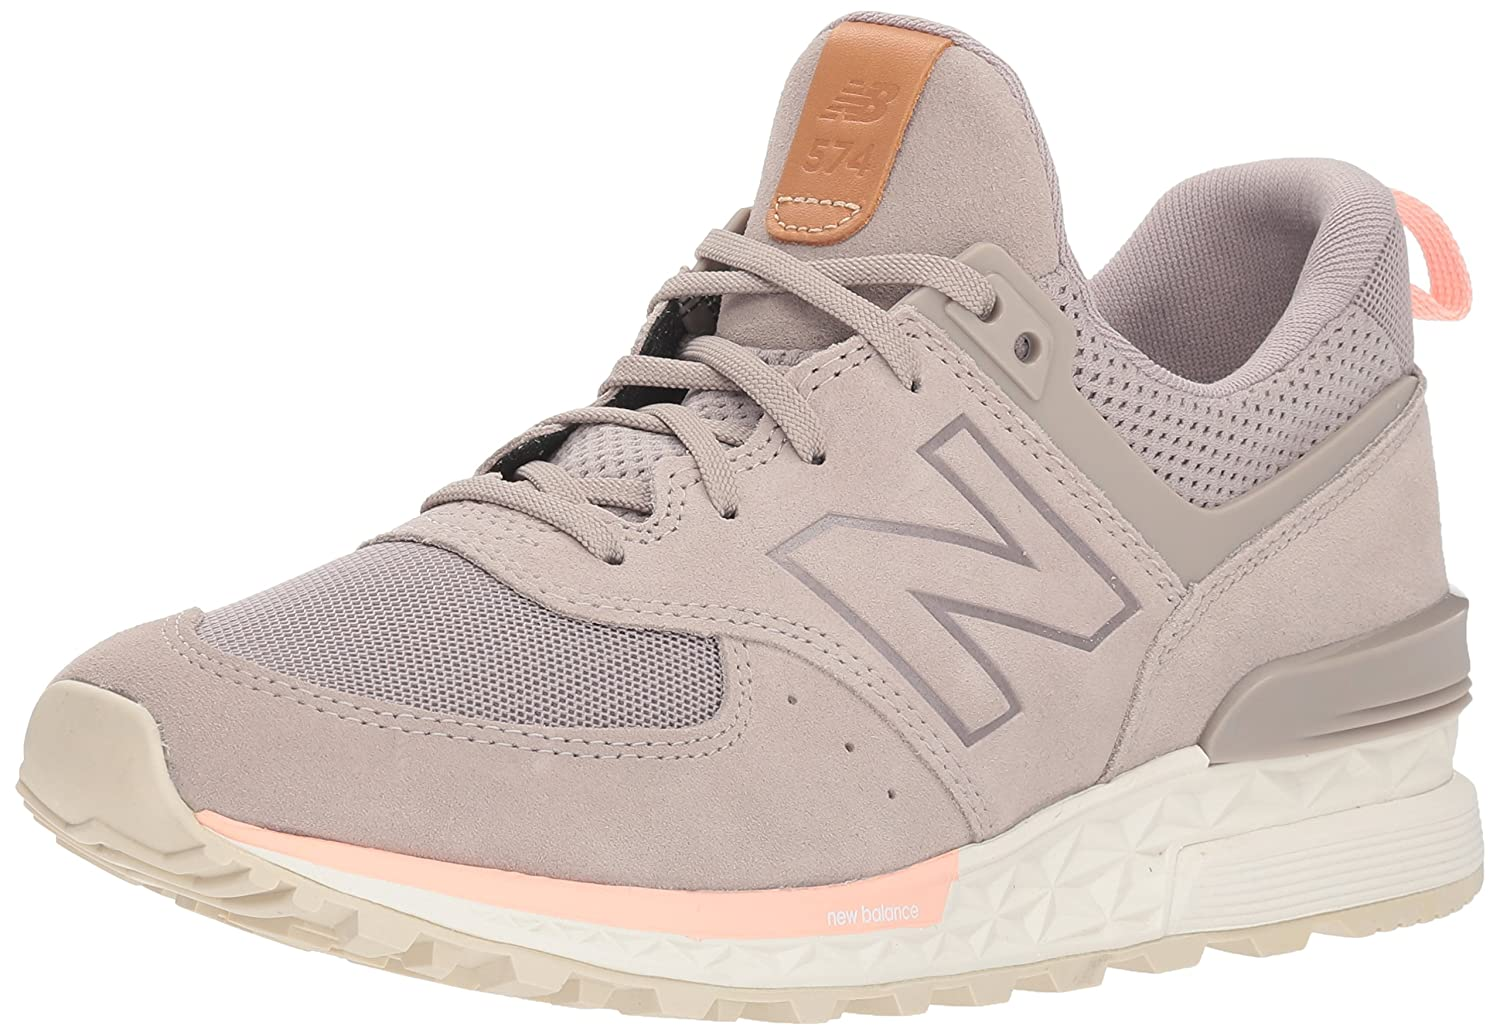 New Balance Women's 574v1 Fresh Foam Sneaker B077SHRRQD 6 D US|Flat White